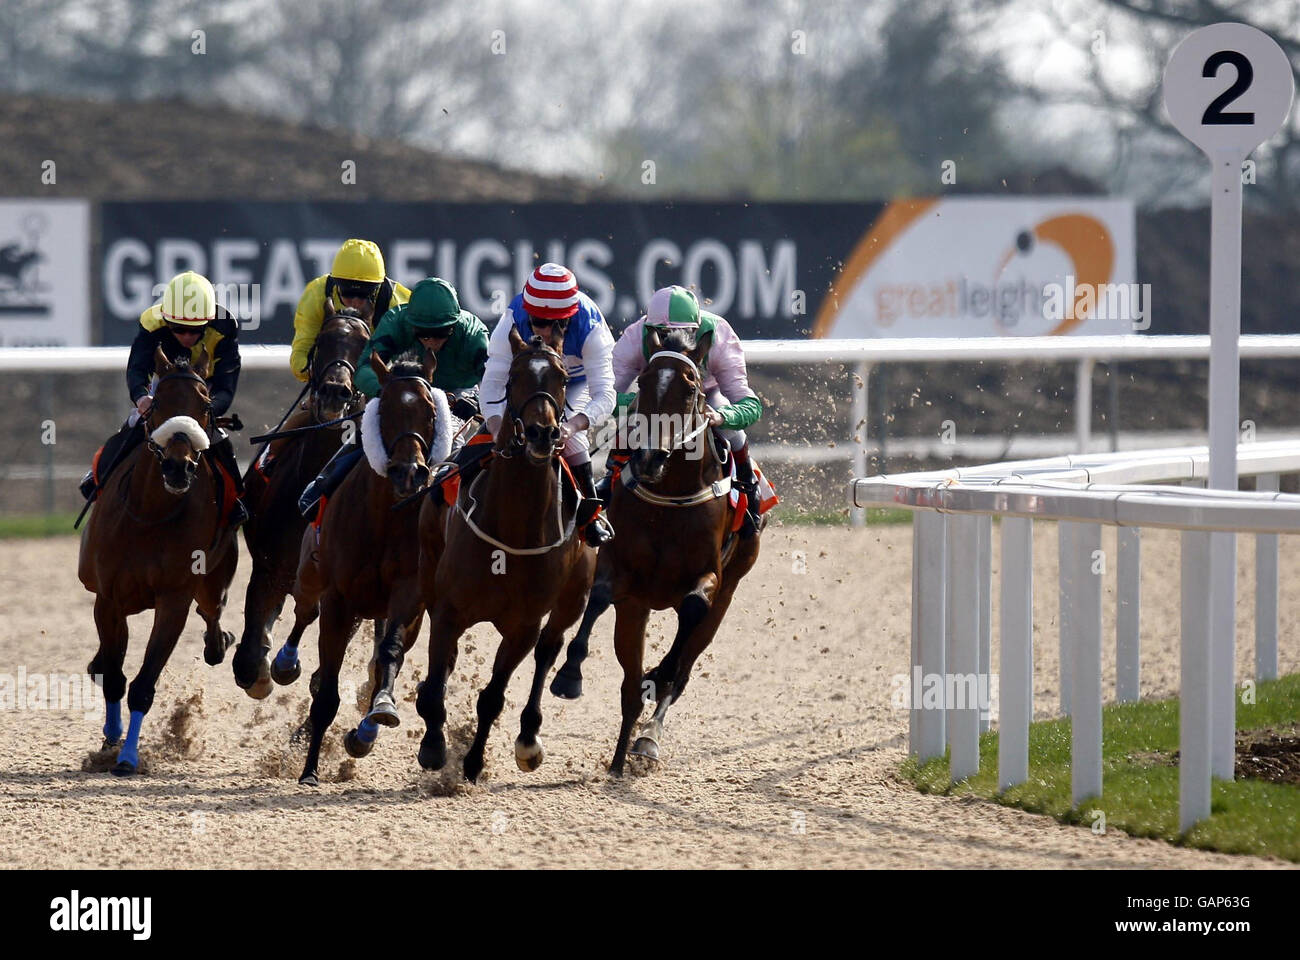 Horse racing invitation only day stock photos horse racing horse racing invitation only day great leighs racecourse stock image stopboris Choice Image